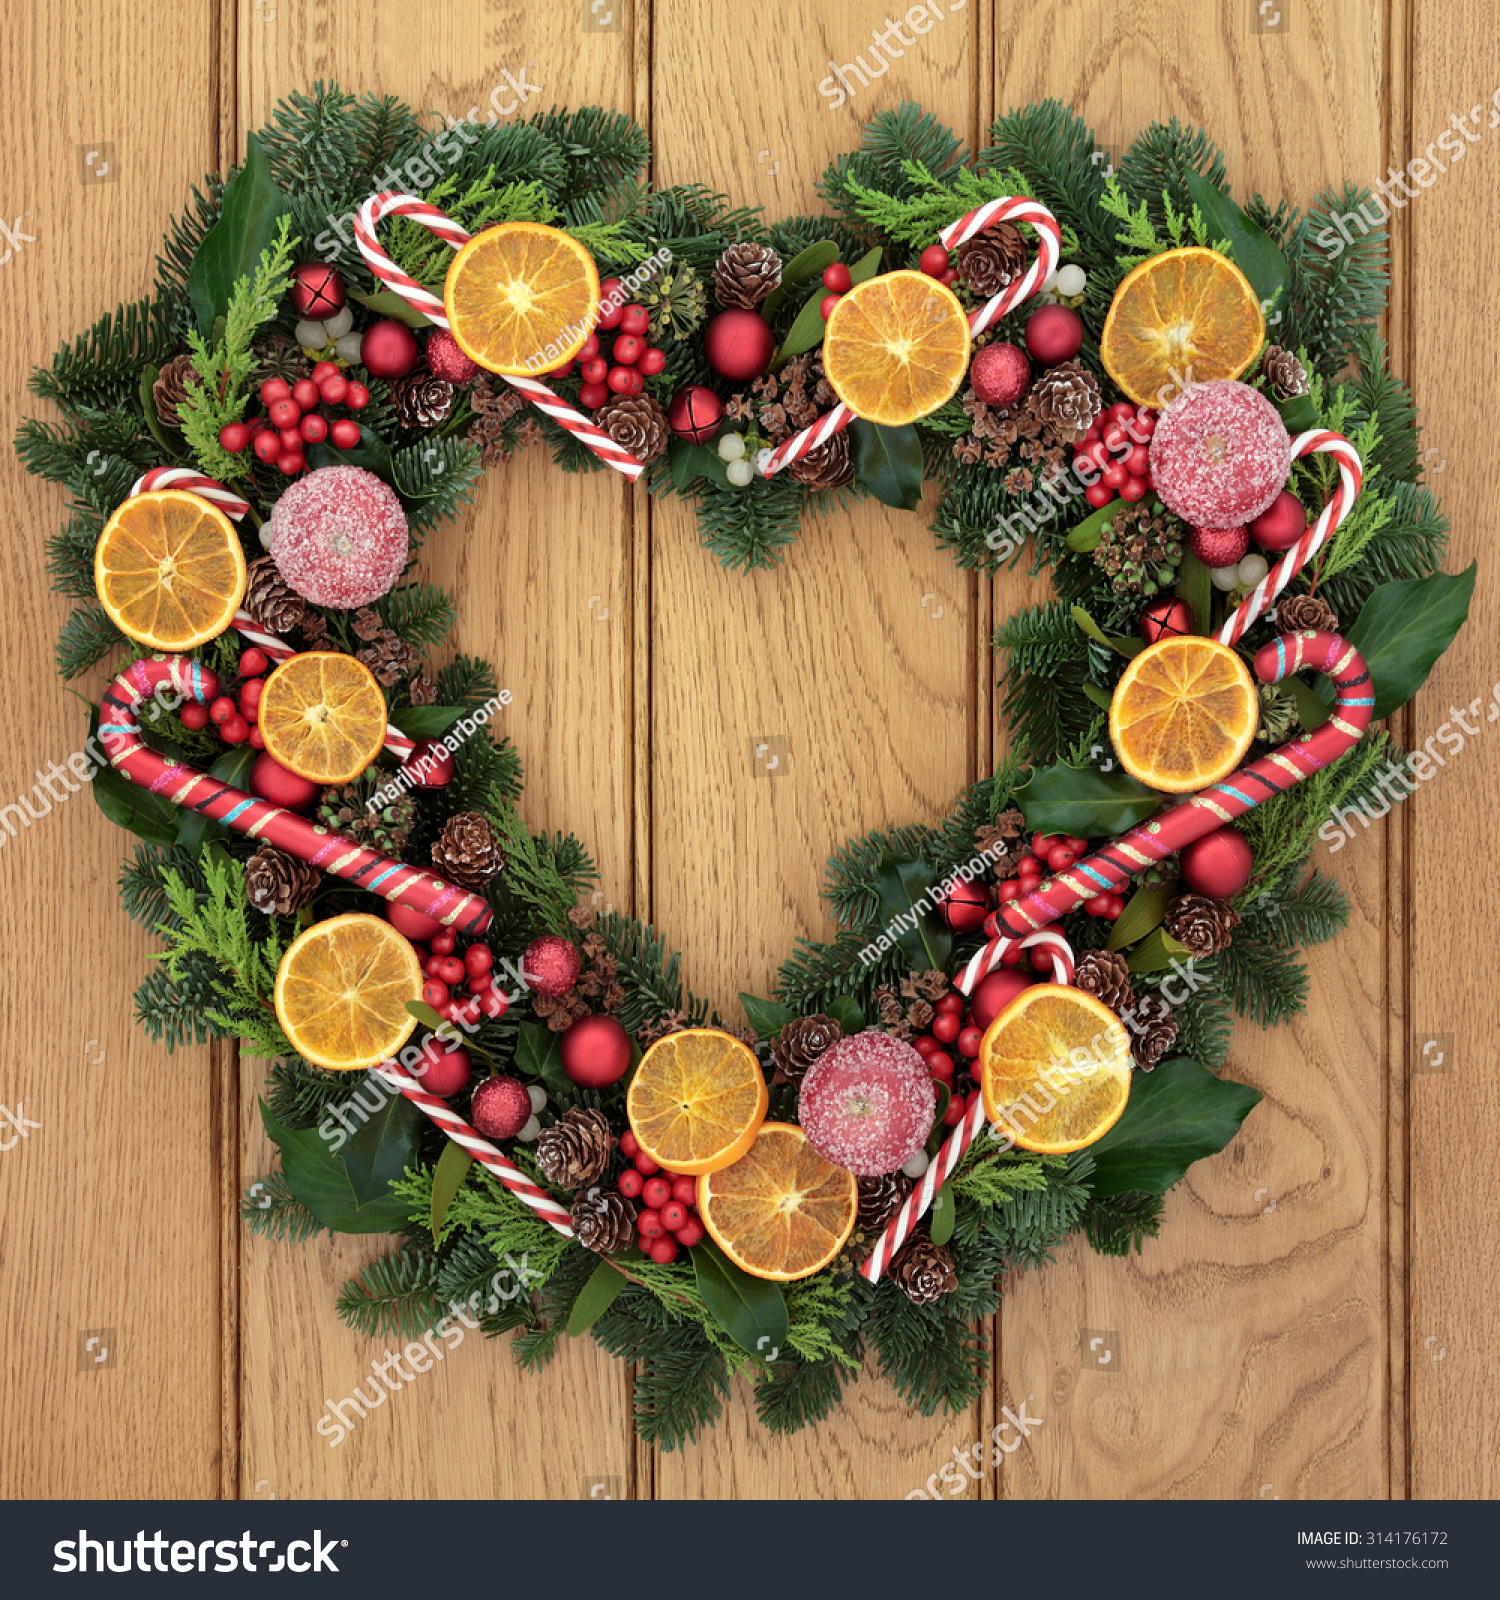 Christmas Heart Shaped Wreath With Dried Fruit, Candy